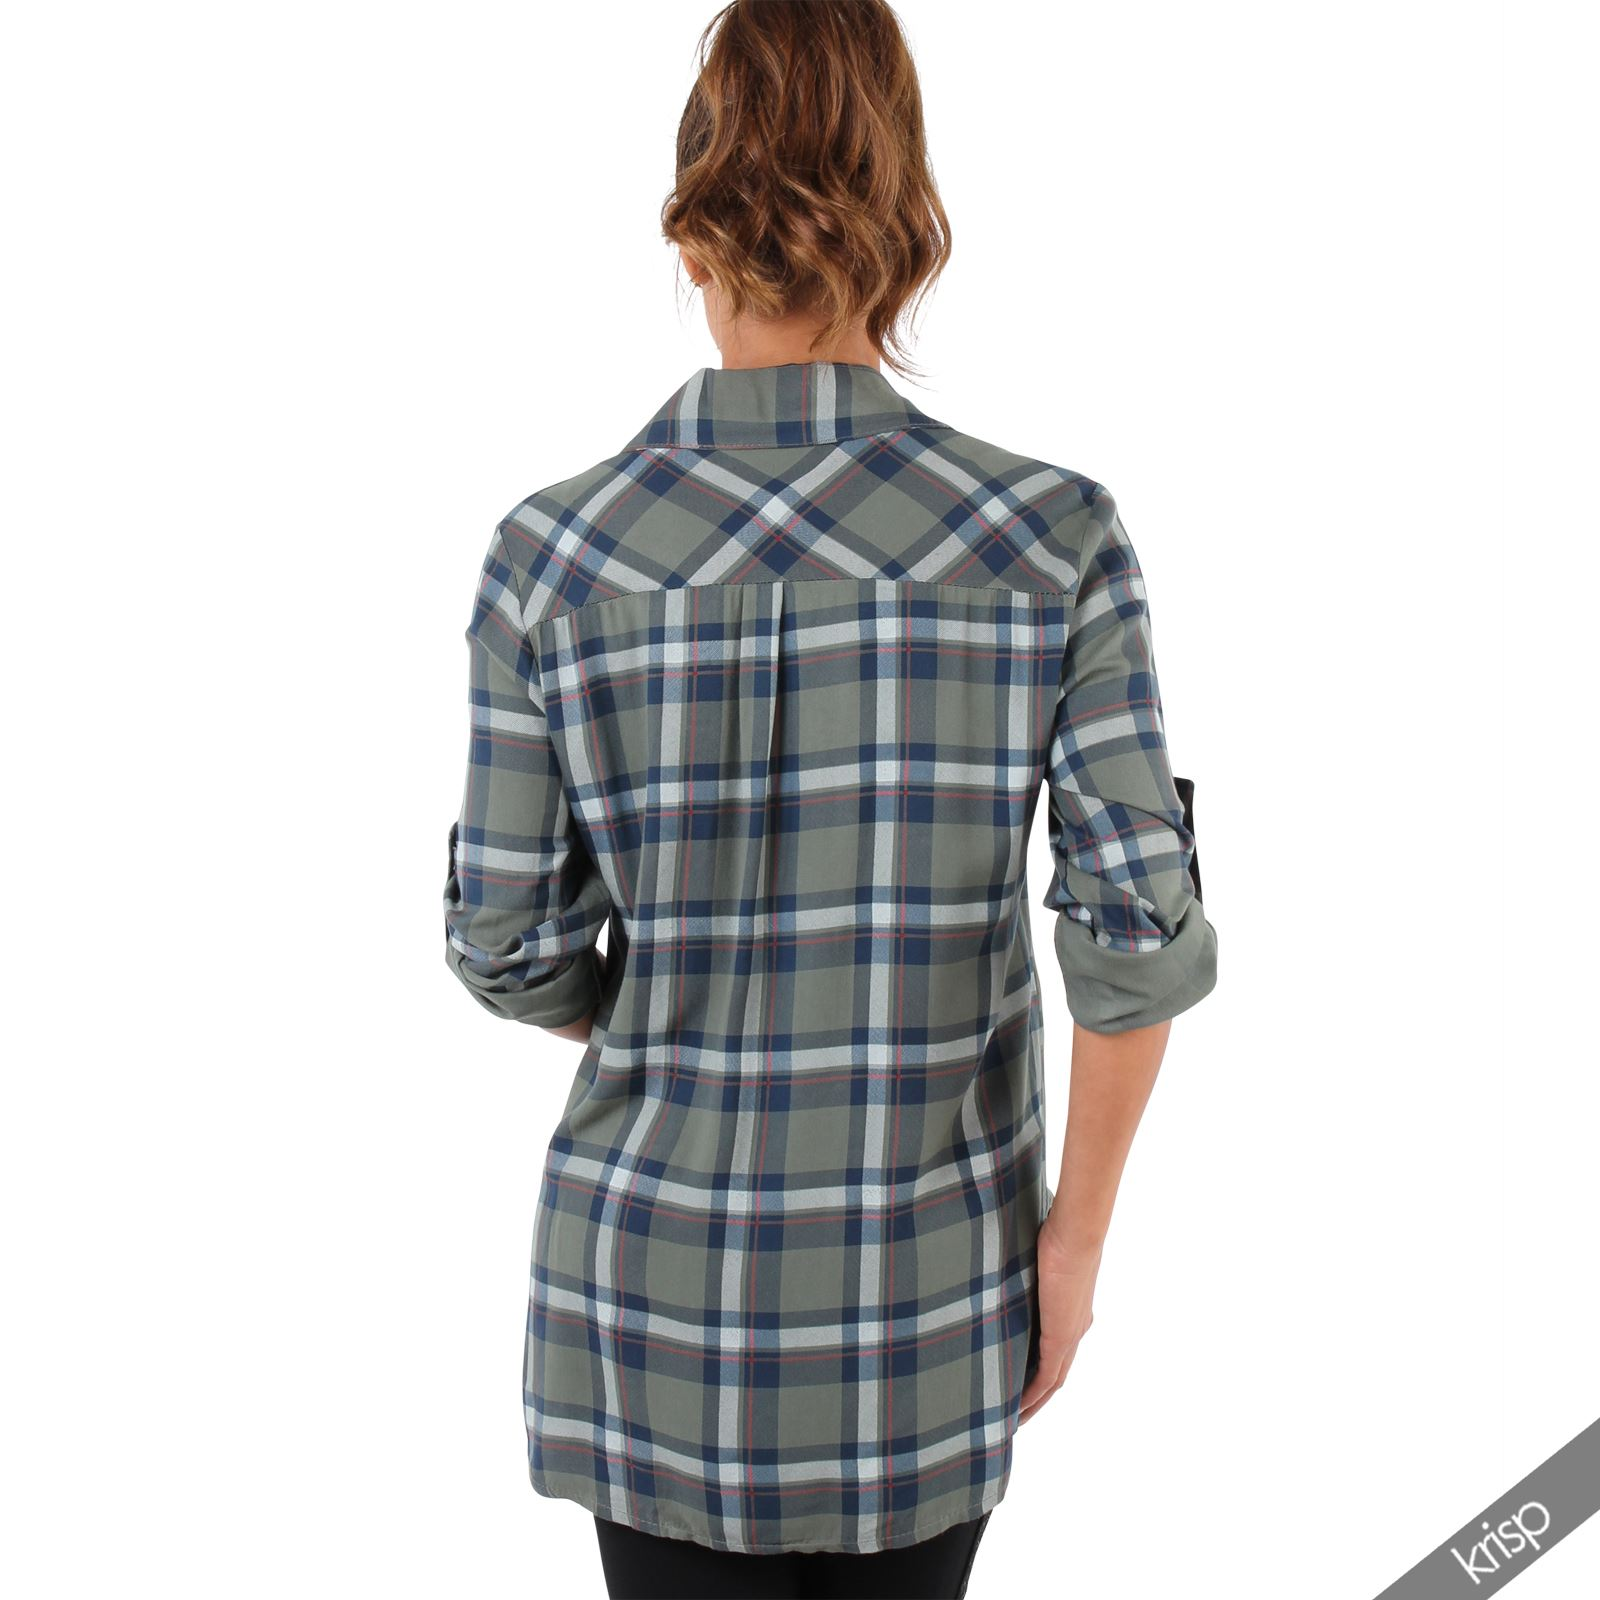 Men Flannel Plaid Shirt % Cotton Spring Autumn Casual Long Sleeve Shirt Soft Comfort Slim Fit Styles Brand Man Clothes. Rated 5 out of 5. by I***v; Men Flannel Plaid Shirt % Cotton Spring Autumn Casual Long Sleeve Shirt Soft Comfort Slim Fit Styles Brand Man Clothes.